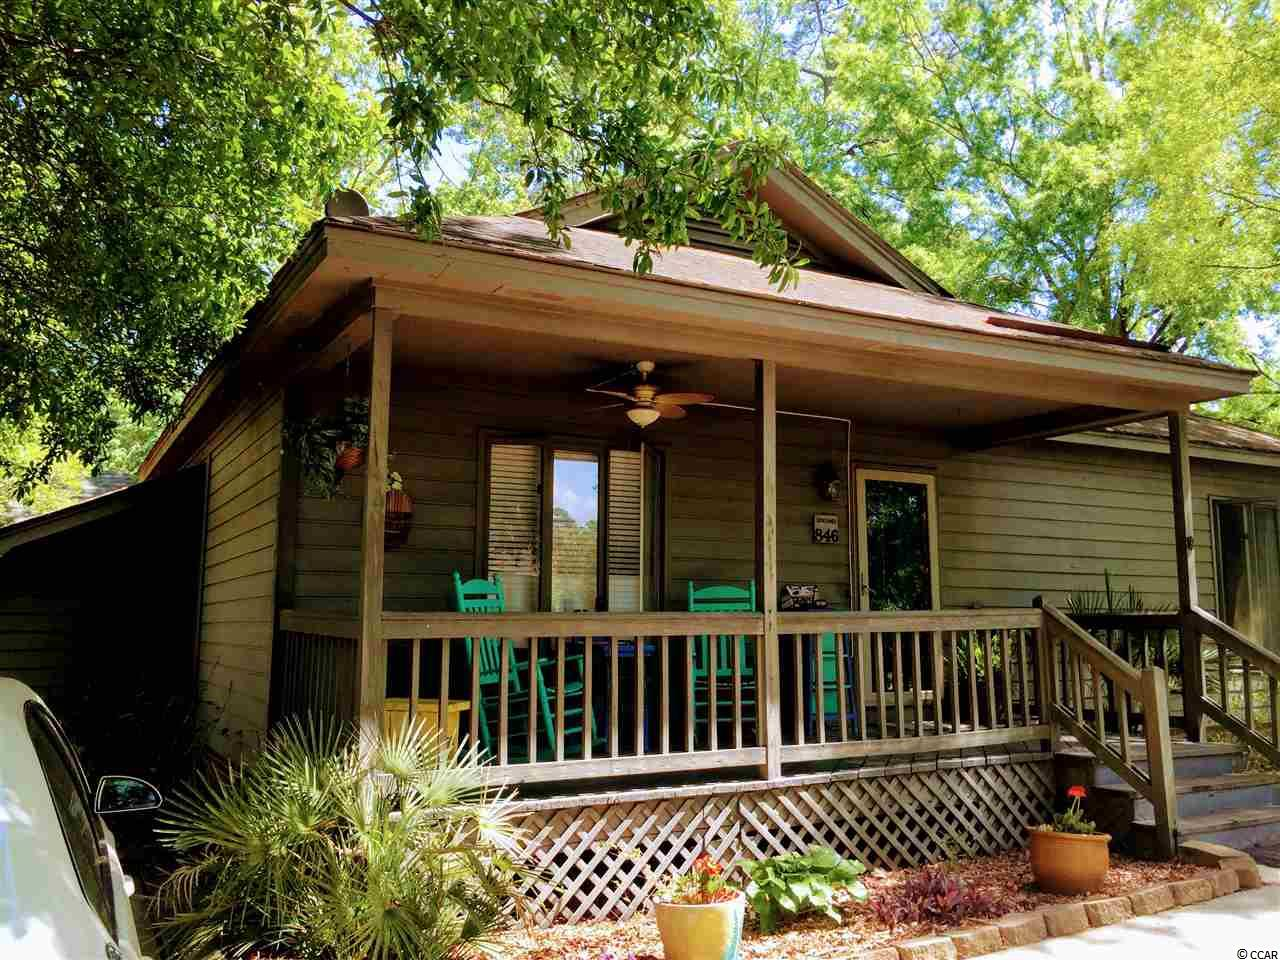 Location, Location, Location!!! This single family 2 bedroom 2 bath home is centrally located in the Garden City/Murrells Inlet community less than 1 mile from the stunning Atlantic Beaches!!! This home is awaiting its new owner who can envision the updated and finished beauty! Some of the updates have been started including the kitchen featuring beautiful granite counter tops. Solid bones, hardwood floors and one of the few homes with a detached garage! Situated on a quiet tree lined street with lovely porch and a Patio in rear of home. TIME to enjoy the outdoors! Separate Mudd room & Laundry room. Low HOA fees includes a clubhouse and an outdoor pool WITH wonderful community interaction!. Location, Location, Location!!! This home is loaded with potential and is nestled close to the Kingfisher Pier for the Fishing enthusiasts, nearby multiple Golf Courses for the avid Golfer in the family, and within walking distance to shopping and Restaurants for the fun-and Retirement or Vacationing!!!... Picture yourself on you golf cart for a short ride to the Beach... lots to love!!! Contact your agent today for a private showing or listing agent.